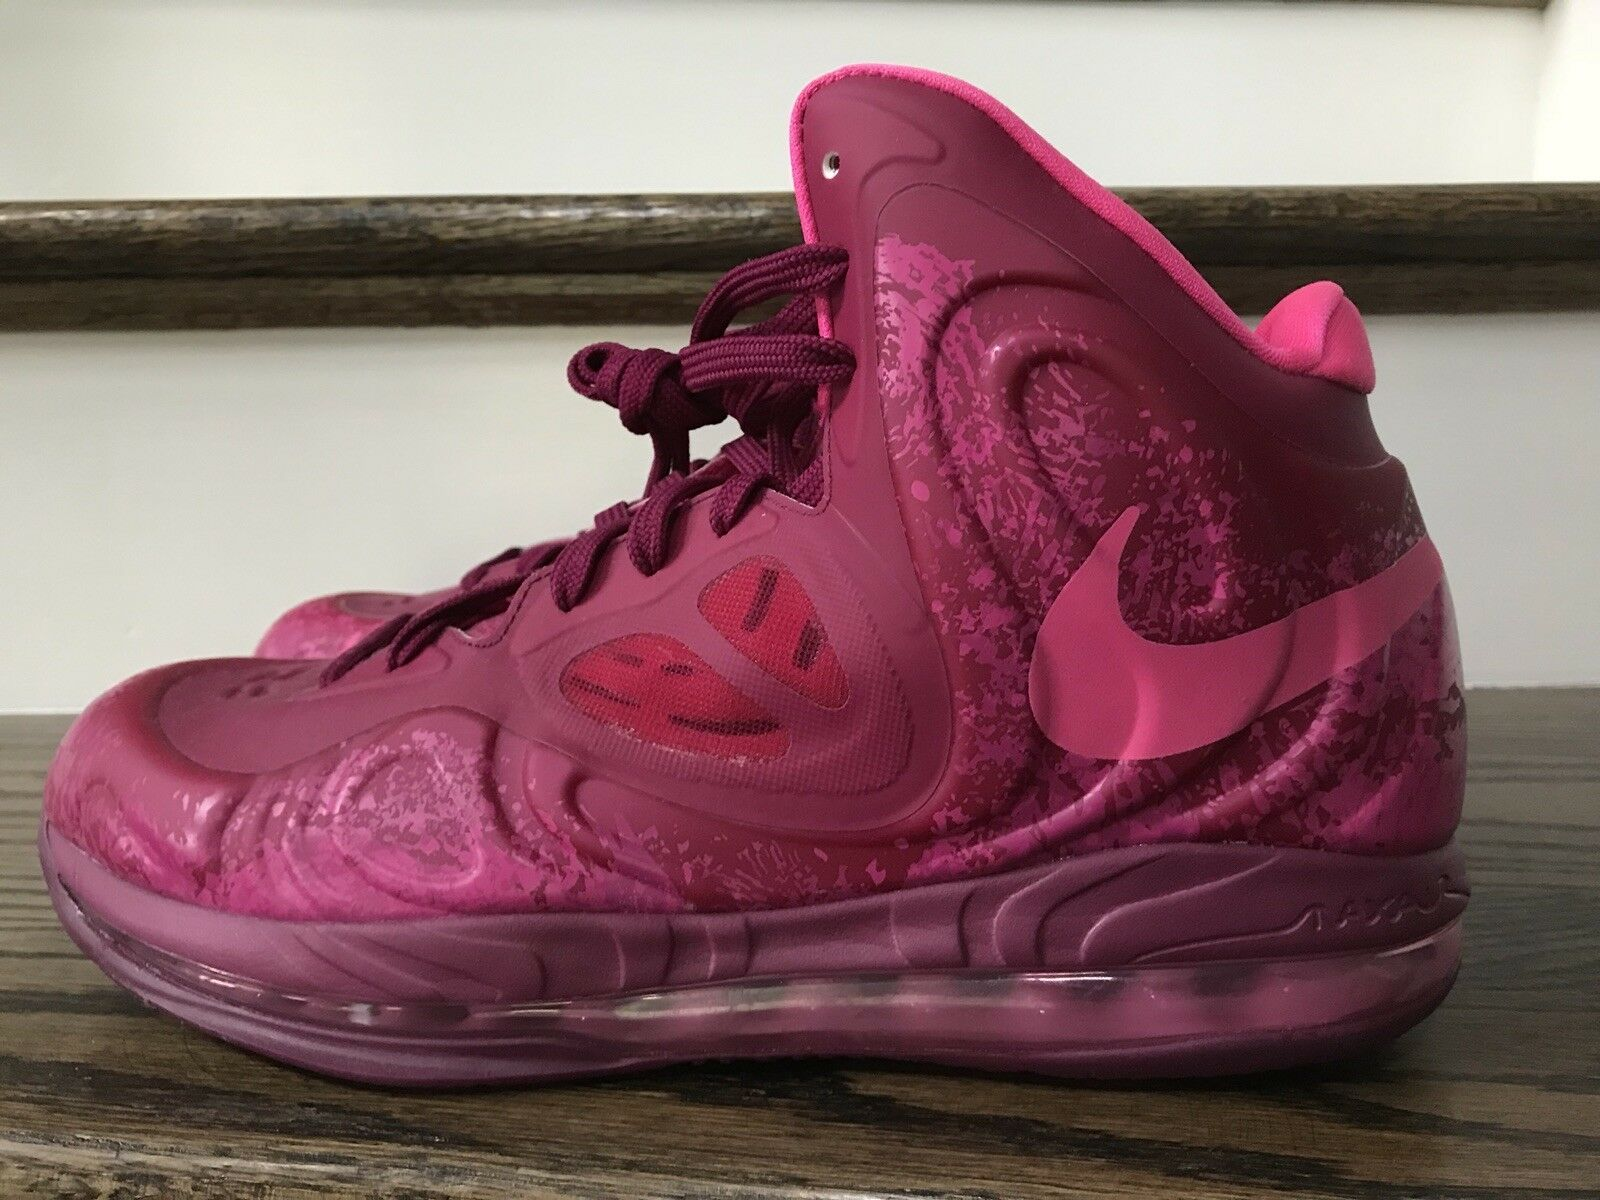 New Nike Air Max Hyperposite sz 10 Pink Raspberry Foil 524862 601 foamposite